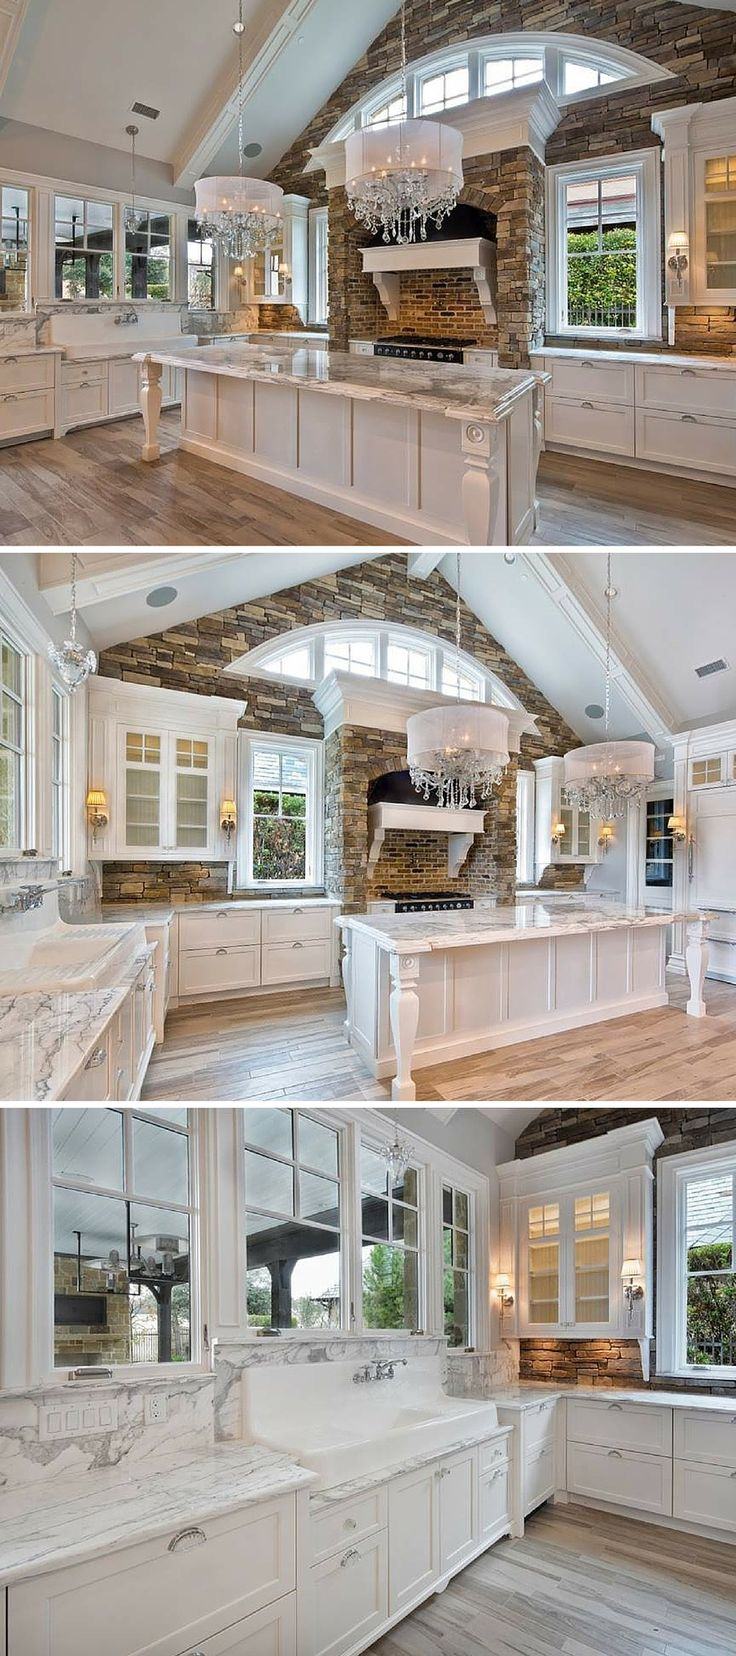 White Kitchen | Kitchen Inspiration | Interior Design #kitchen #whitekitchen #interiordesign